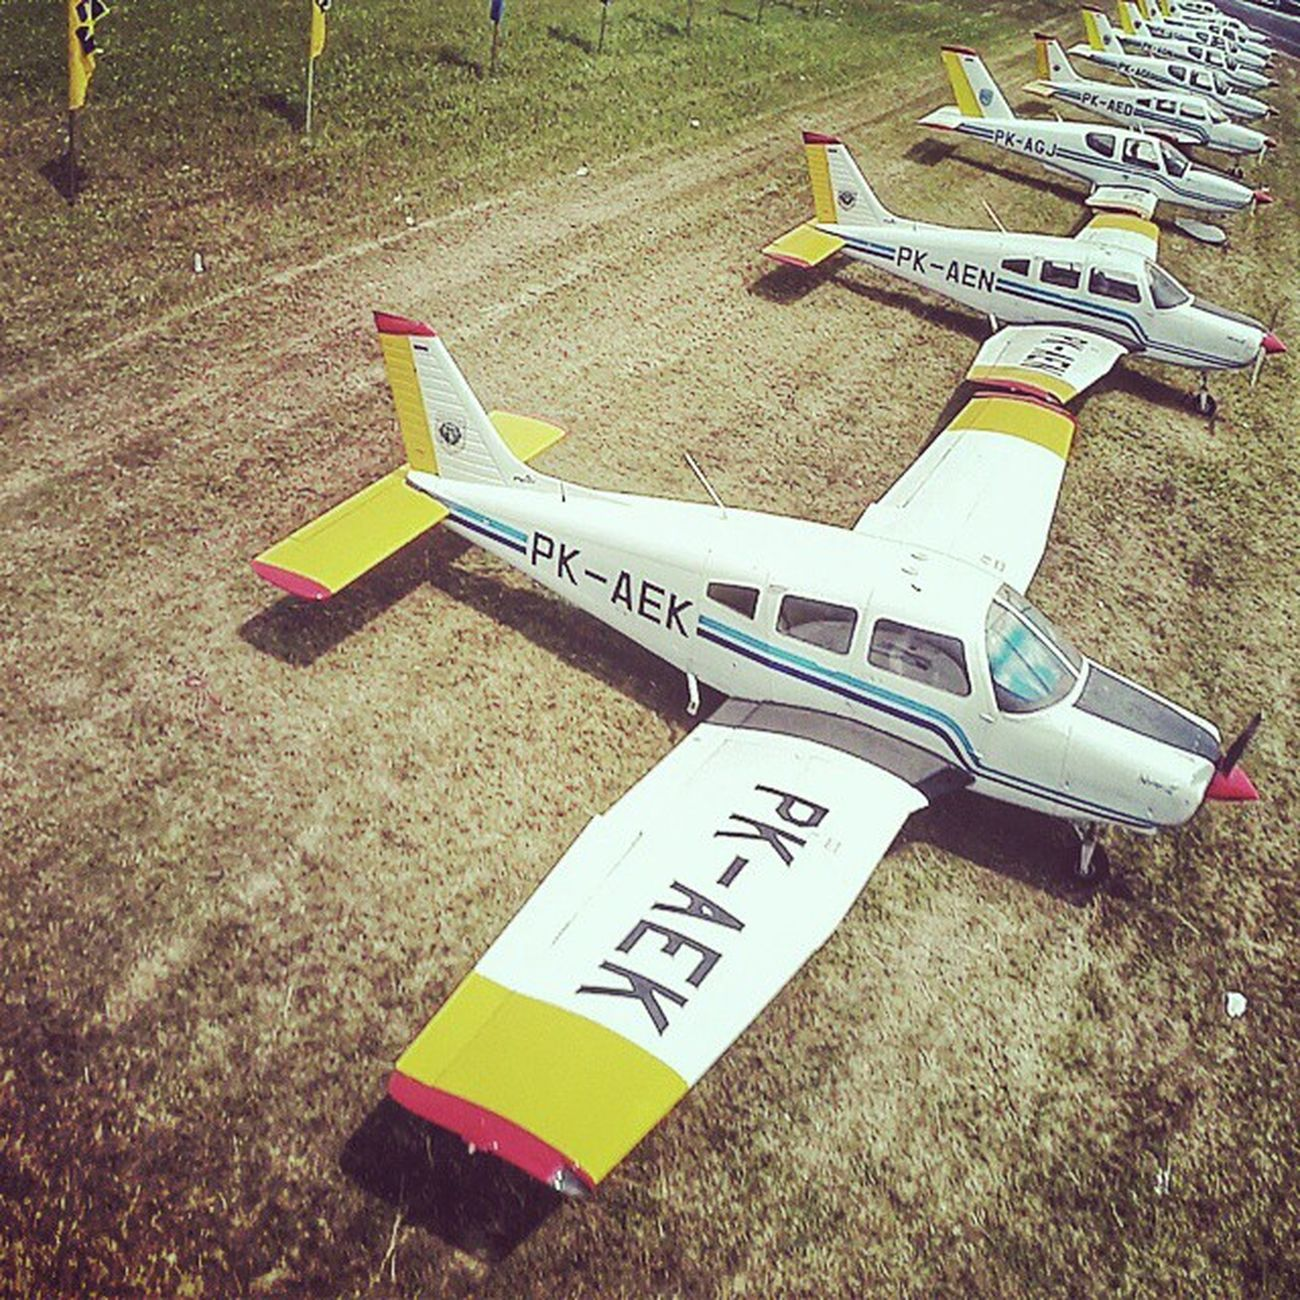 Piper Warrior Mark III ✈ Aviation Aircraft Piperwarrior Flyingschool stpi bandarabudiarto gopro goproid goprooftheday djiphantom djiphantomid vscocam vsco